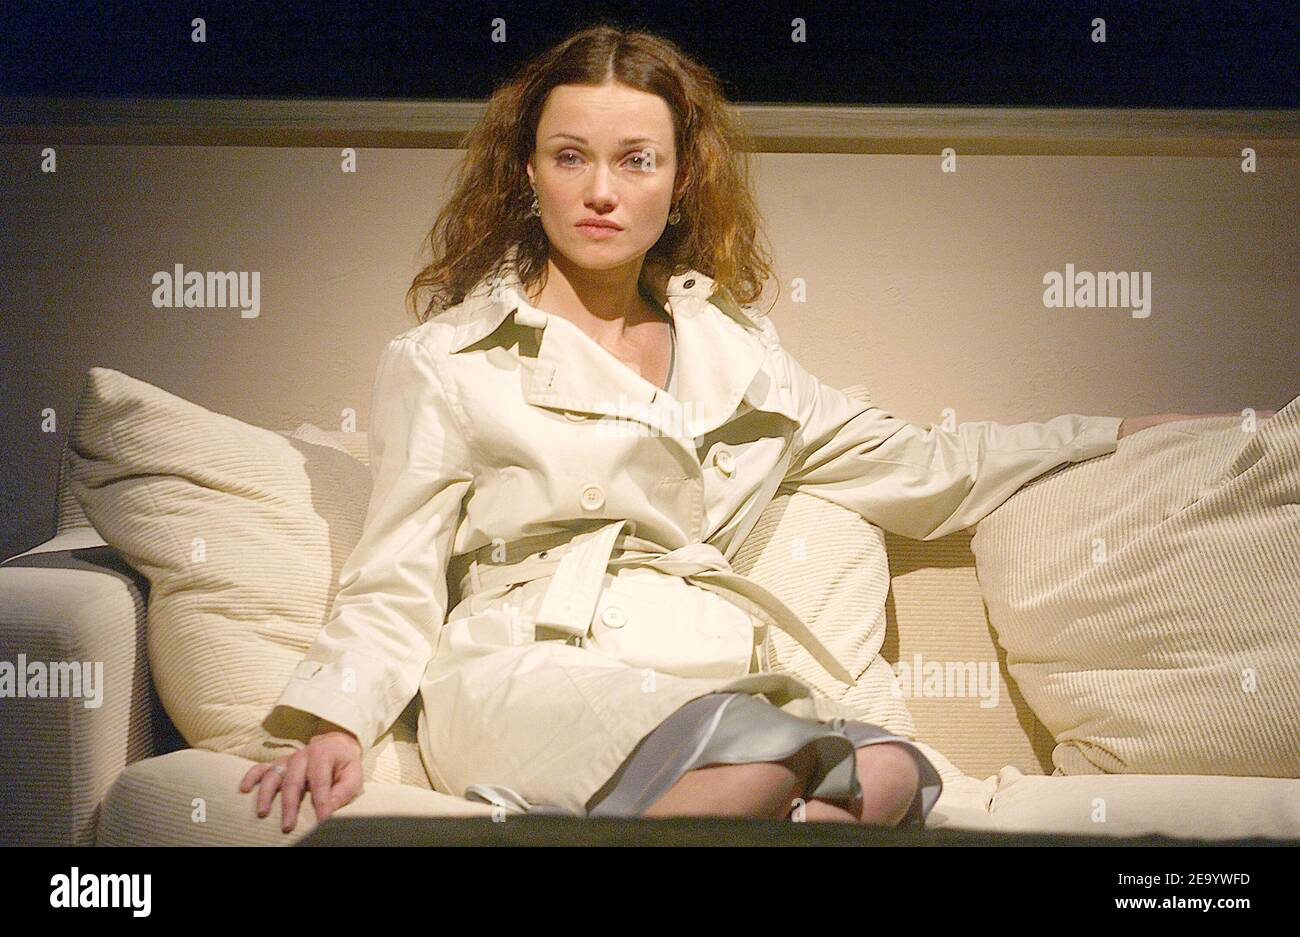 Marine Delterme performs in the play 'Le Manege' at Petit Theatre Montparnasse in Paris, France, on January 25, 2005. Photo by Giancarlo Gorassini/ABACA. Stock Photo